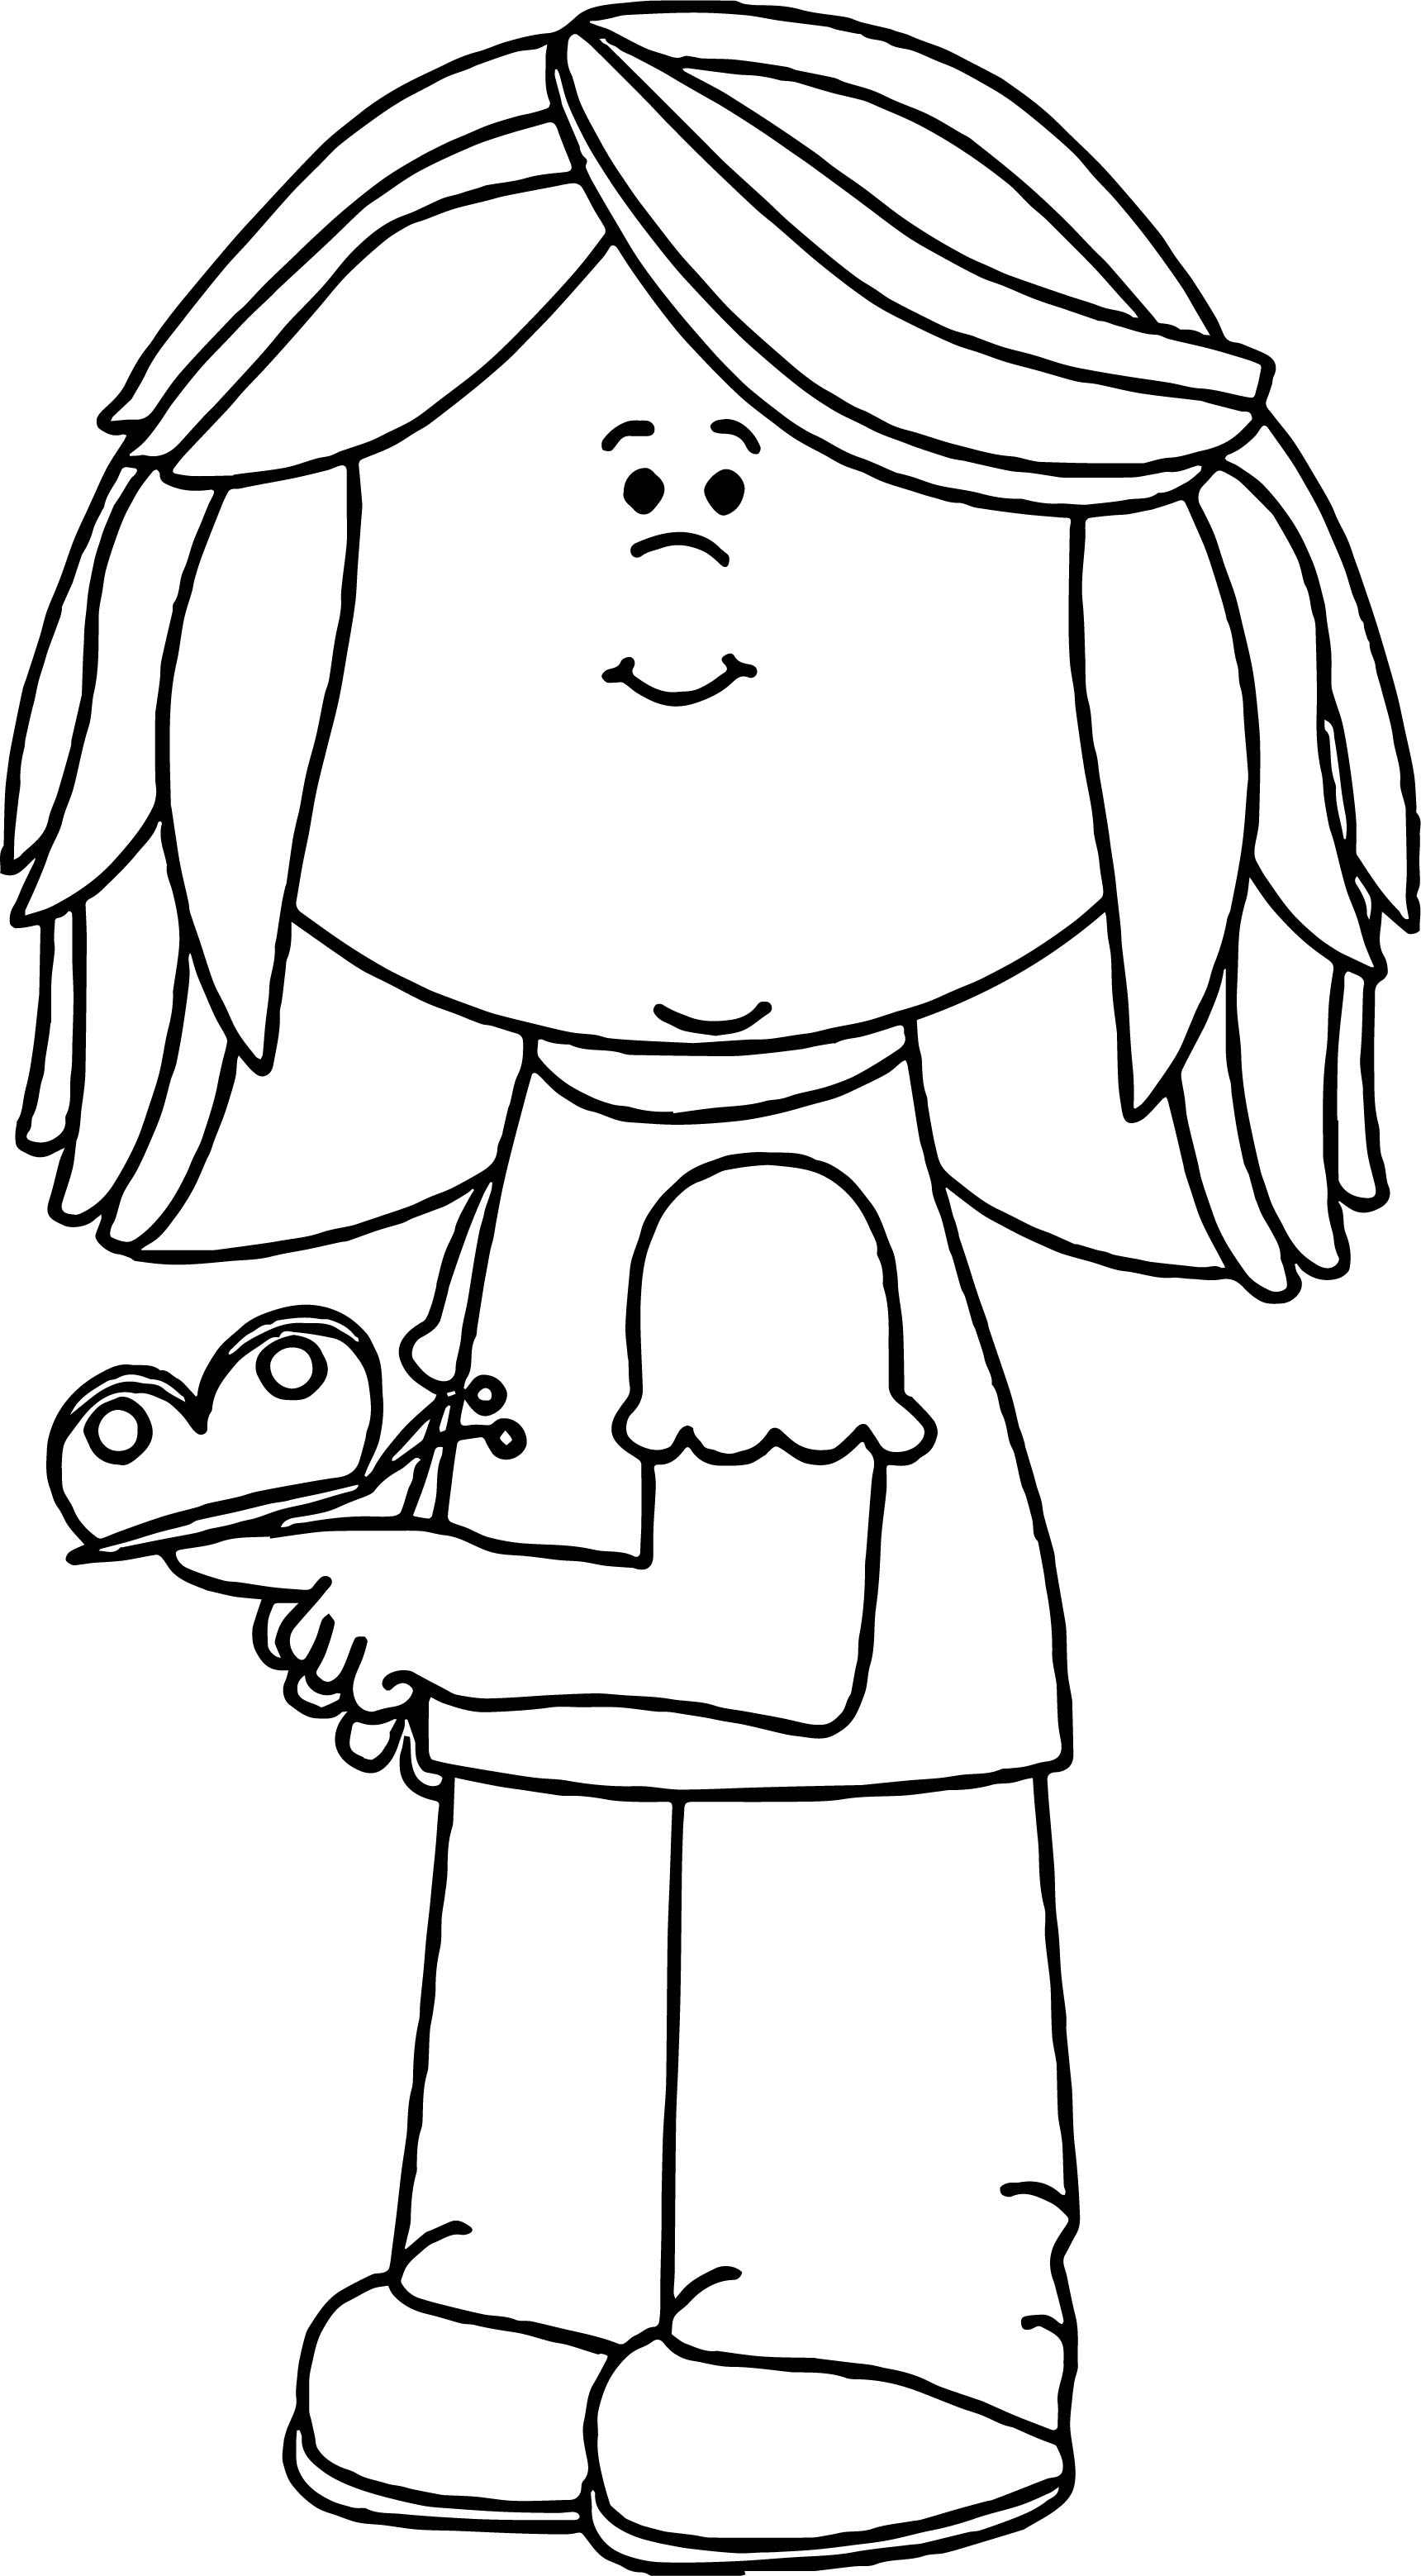 Spring Girl Coloring Page